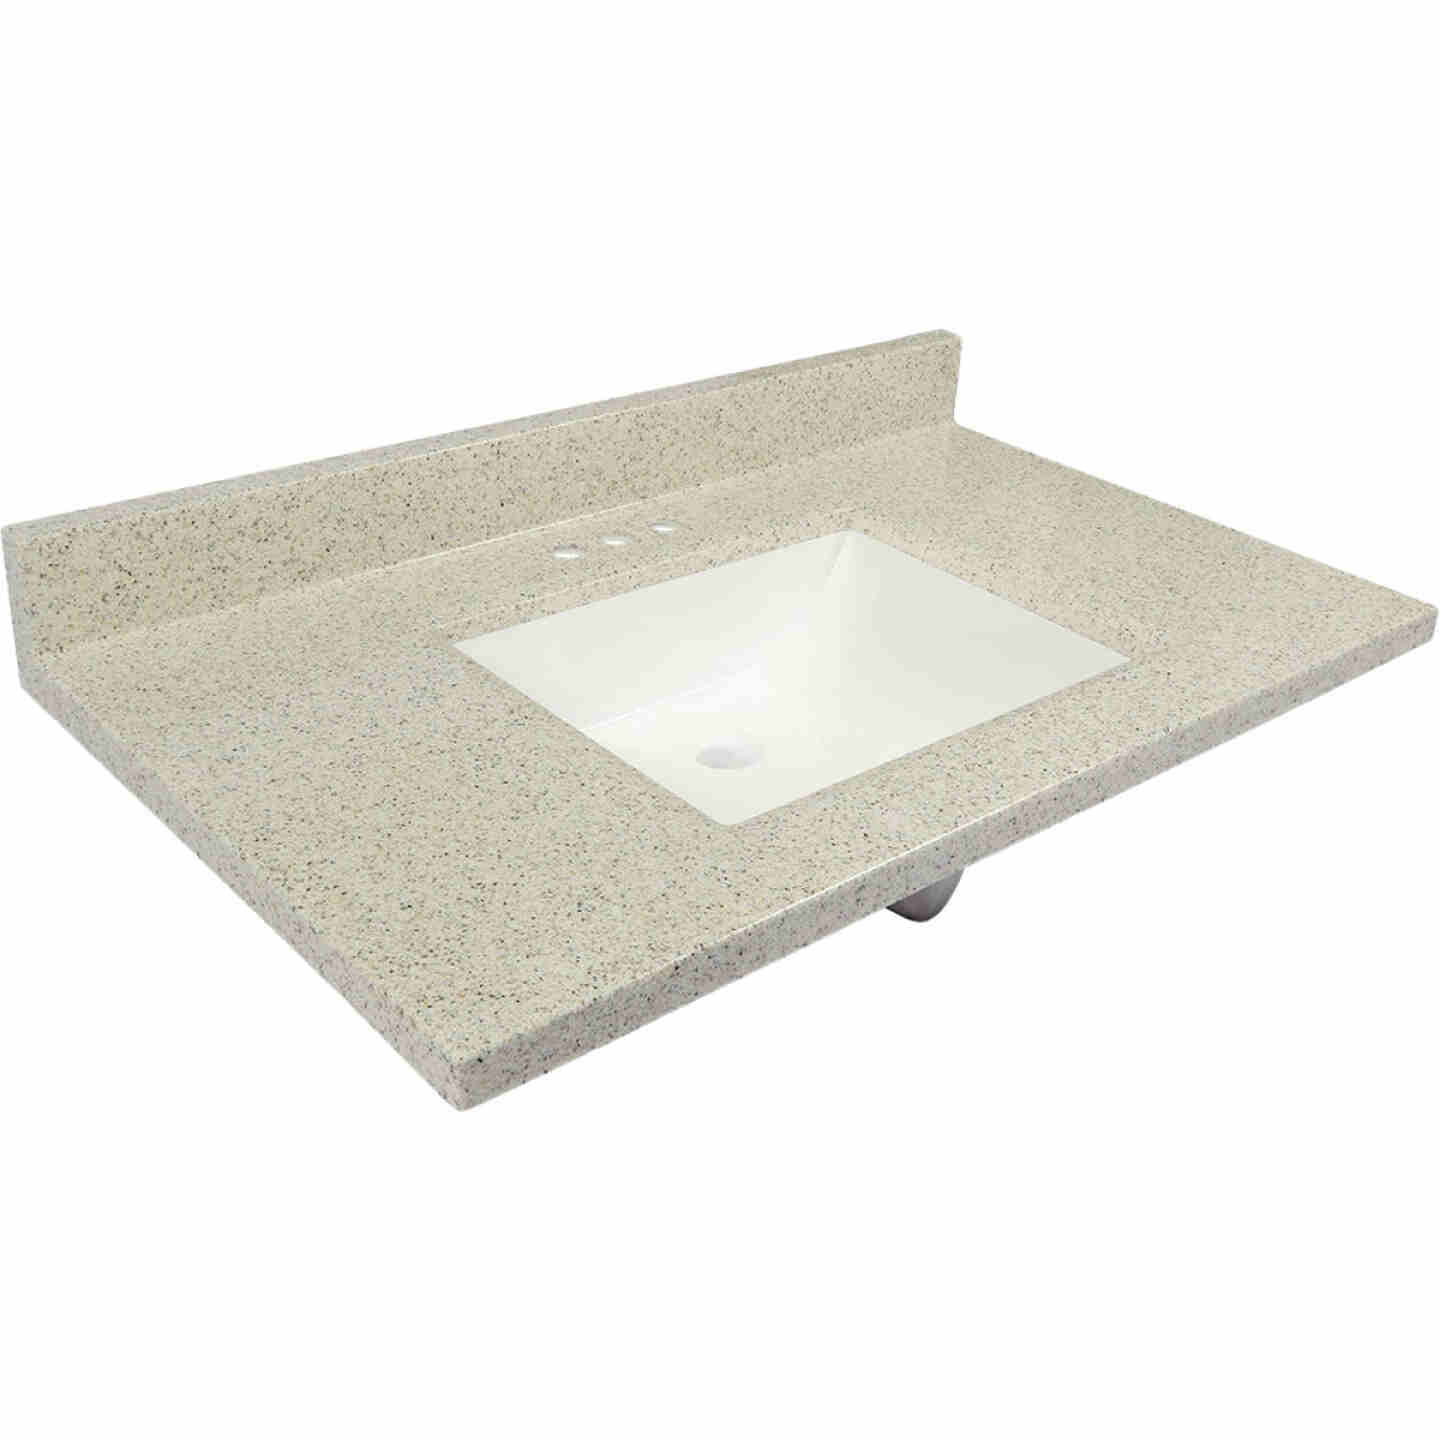 Modular Vanity Tops 37 In. W x 22 In. D Dune Cultured Marble Vanity Top with Rectangular Wave Bowl Image 1